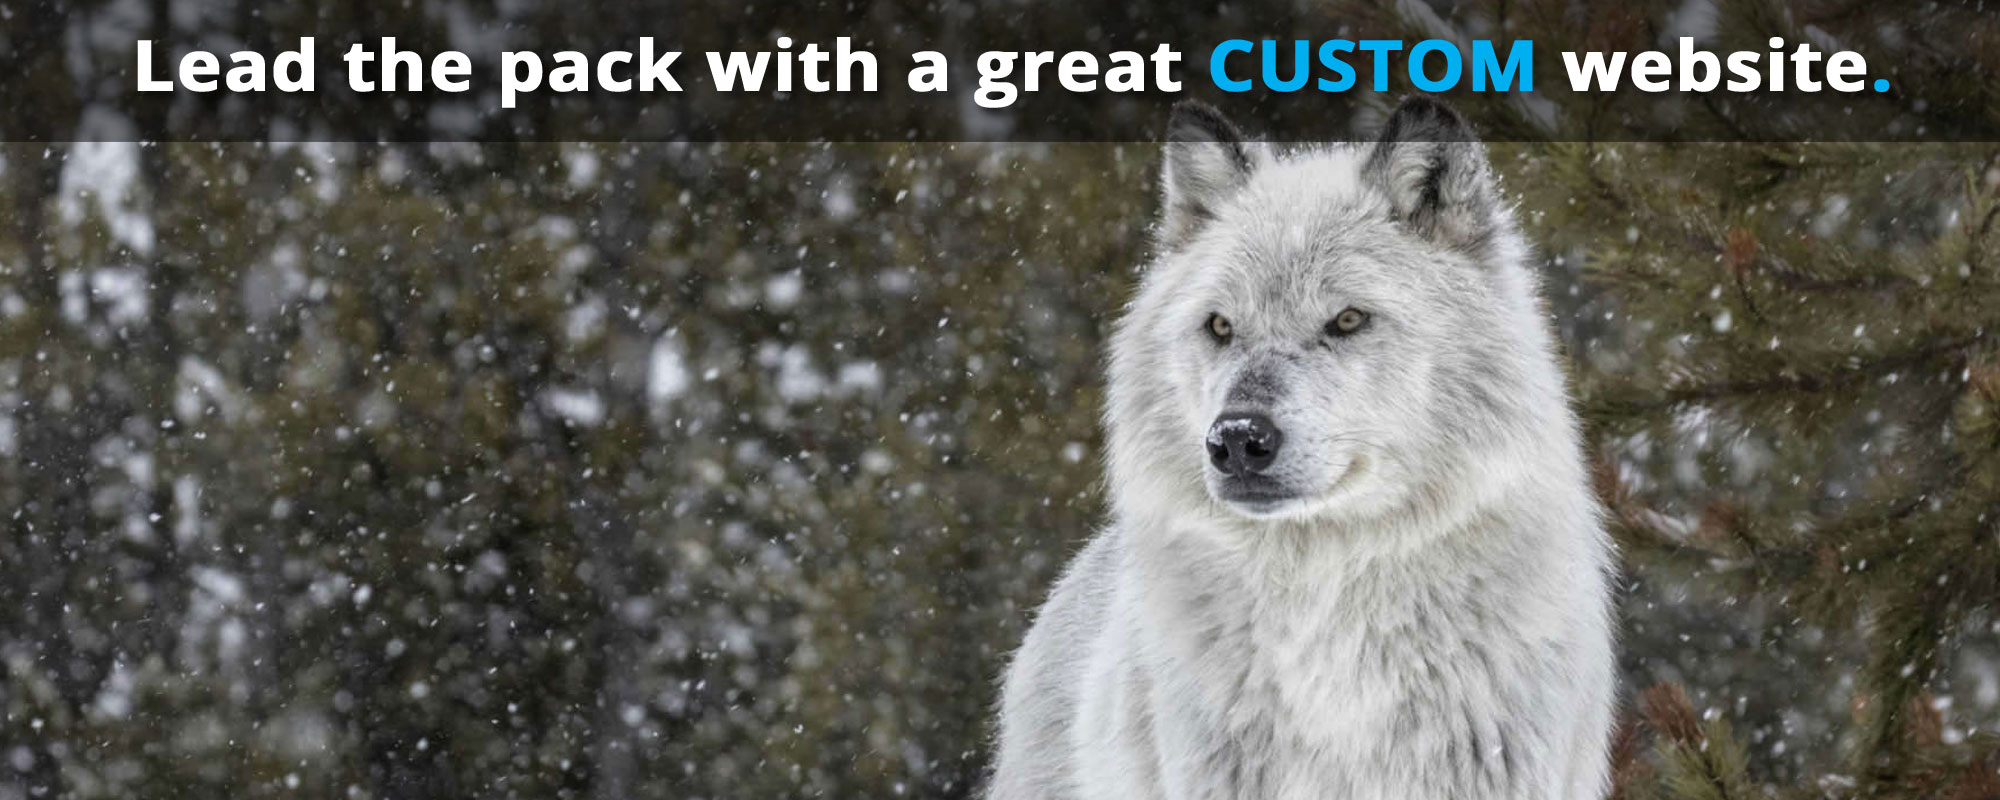 photo (for large monitors) of a pretty white wolf and the text: 'Lead the pack with a great CUSTOM website.'